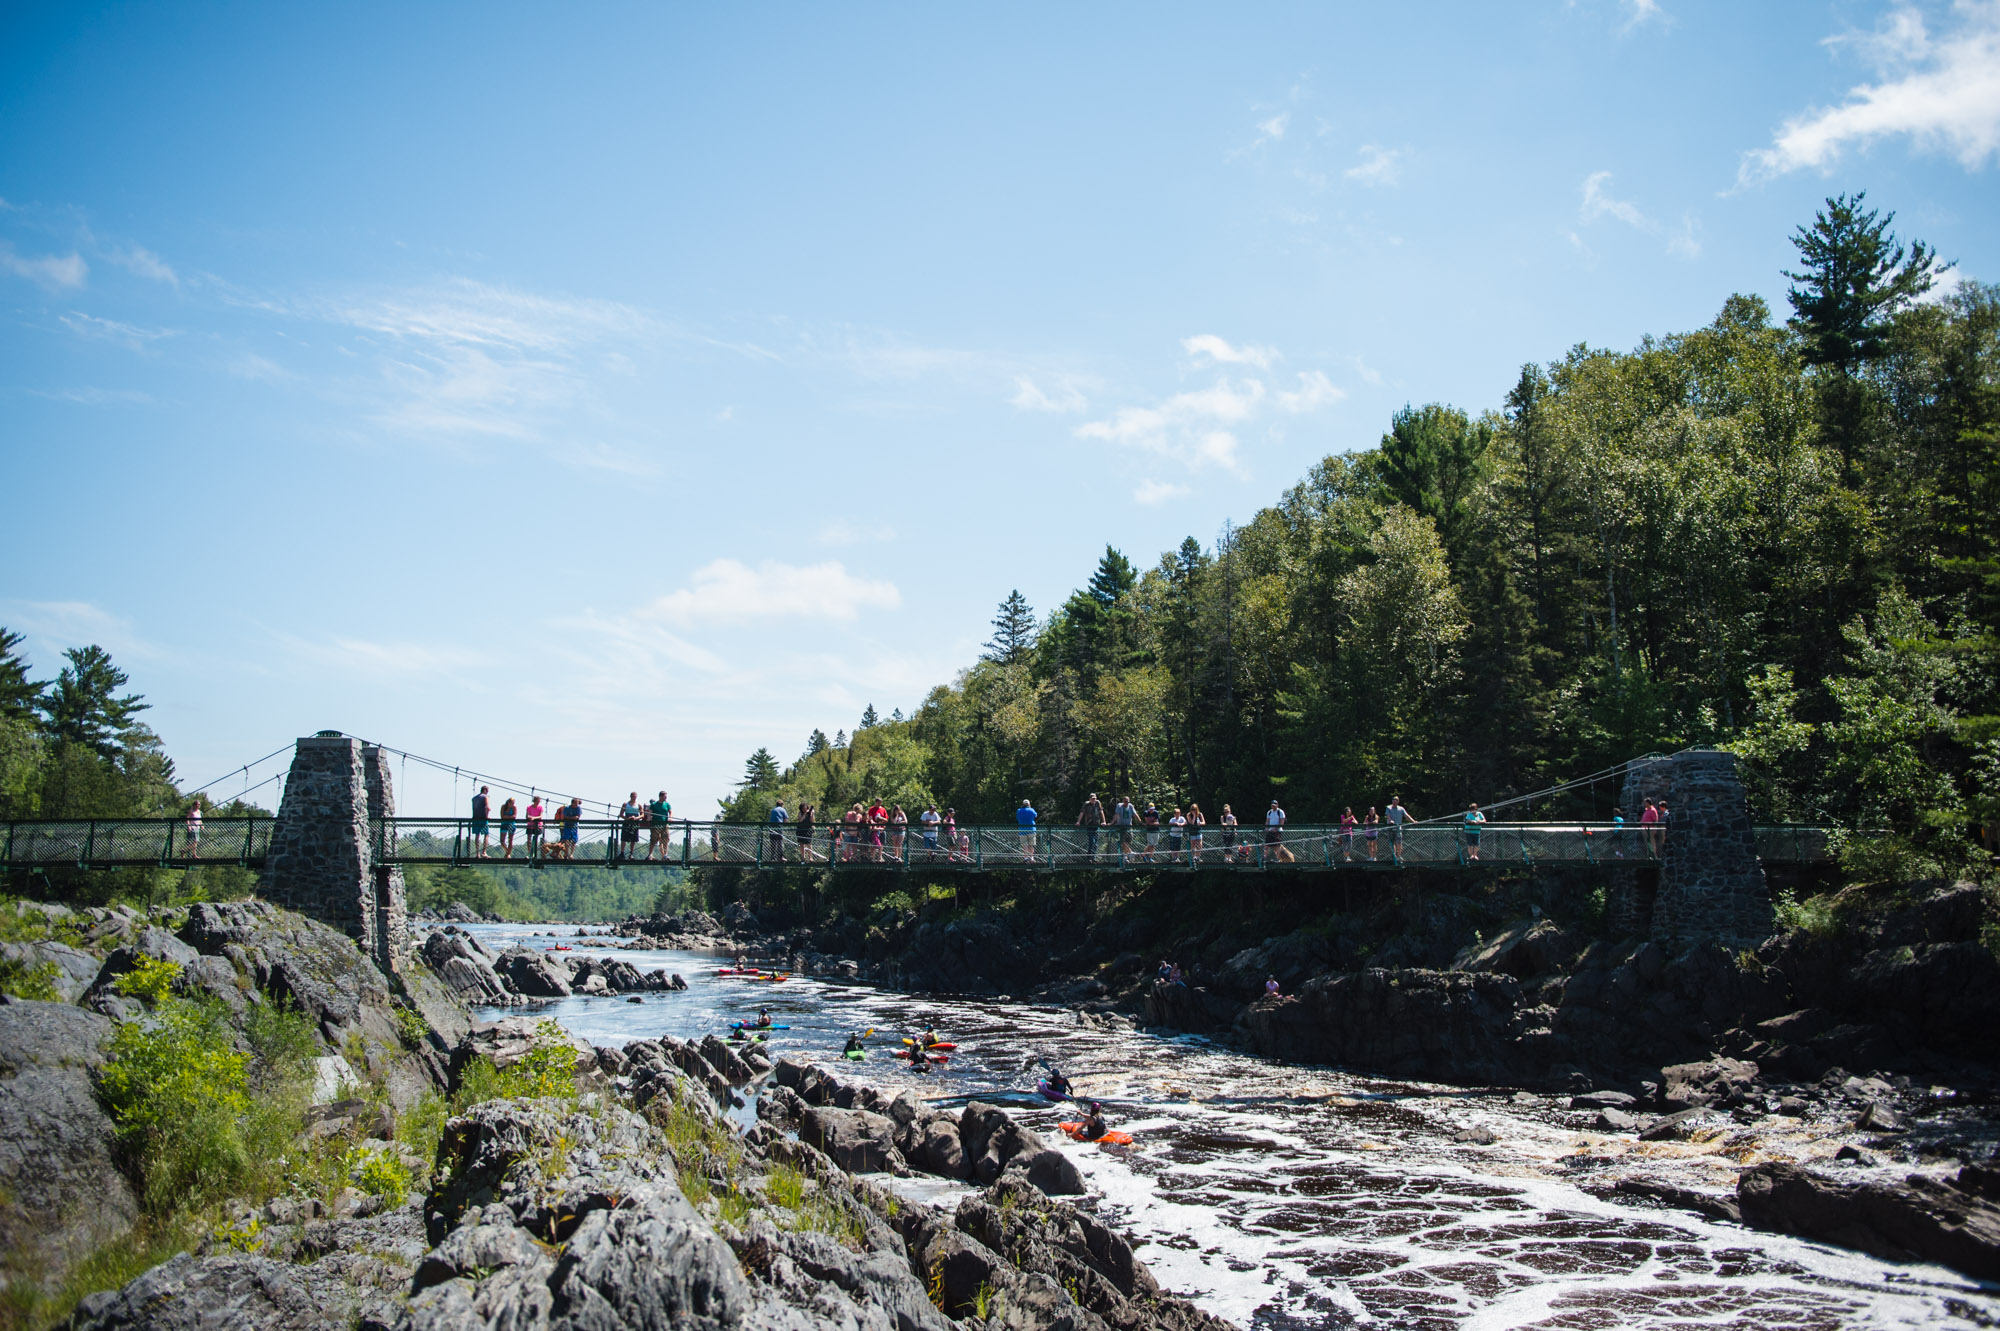 Visitors to Jay Cooke State Park watch kayakers from the iconic Swinging Bridge. Image courtesy of Alex Messenger Photography.